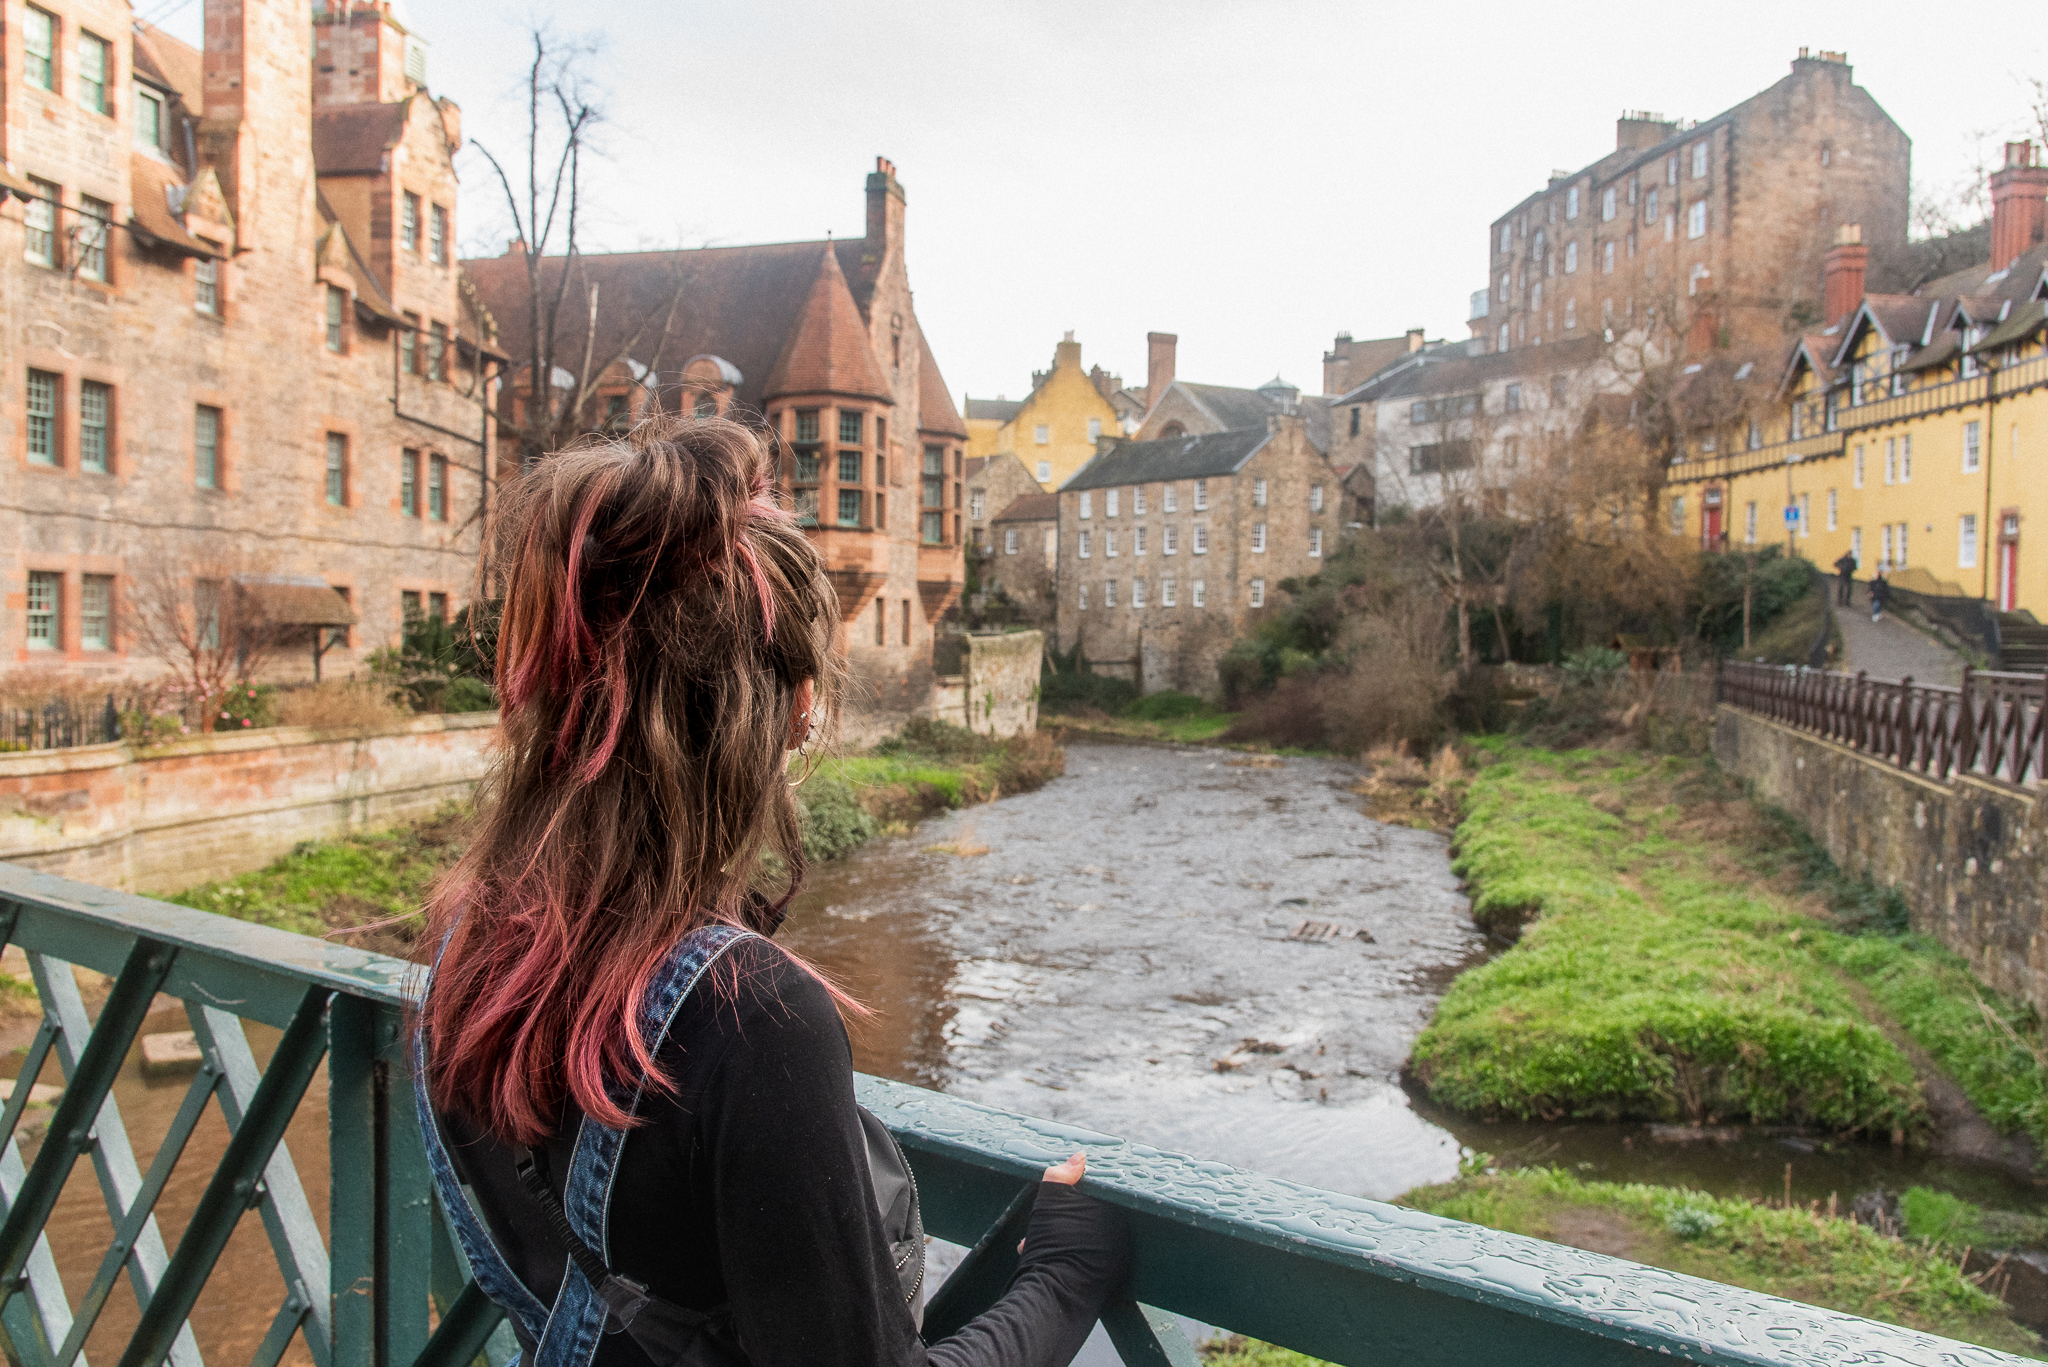 dean village, edinburgh, medival village, river, instagram, the tales of tinyboots, colourful, five of the most instagrammable places in edinburgh